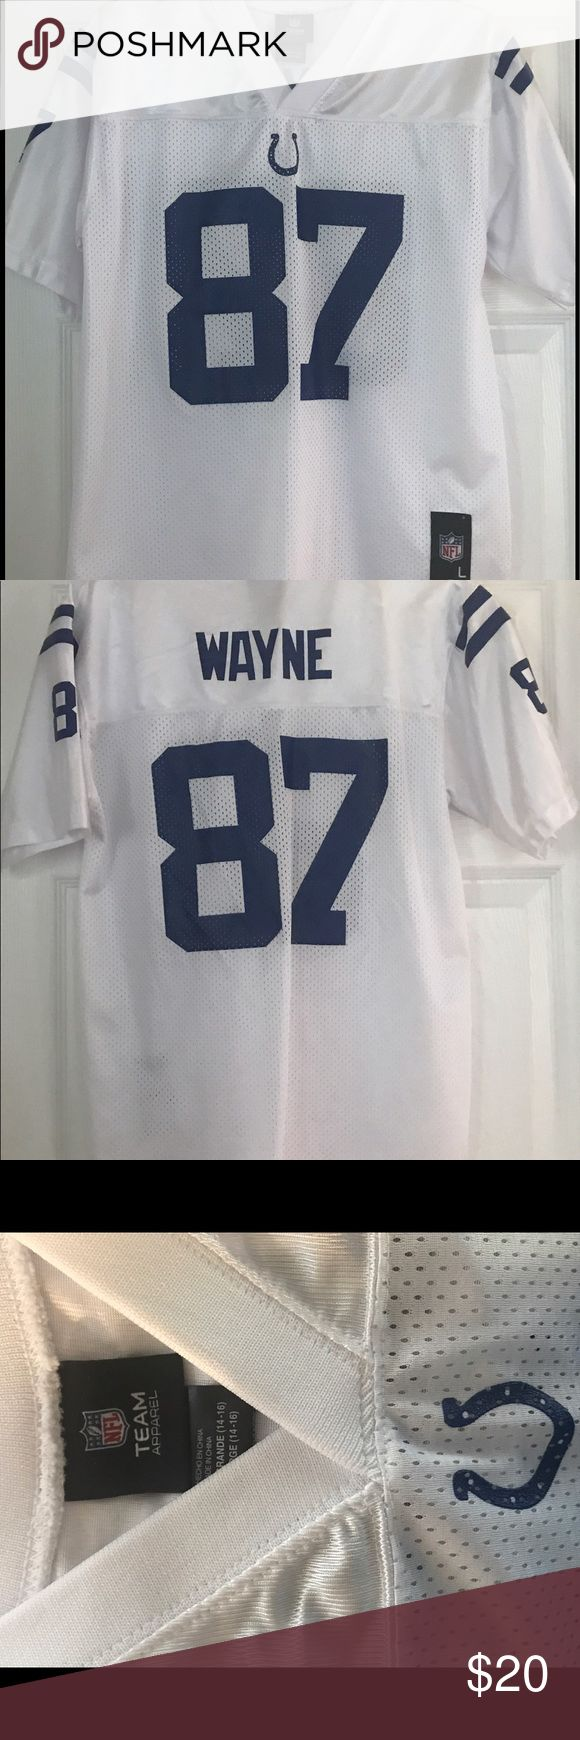 NFL Reggie Wayne Colts Jersey Go, Horse!!  NFL Indianapolis Colts Jersey.  In perfect used condition. Have questions?  Just ask!  😊 NFL Shirts & Tops